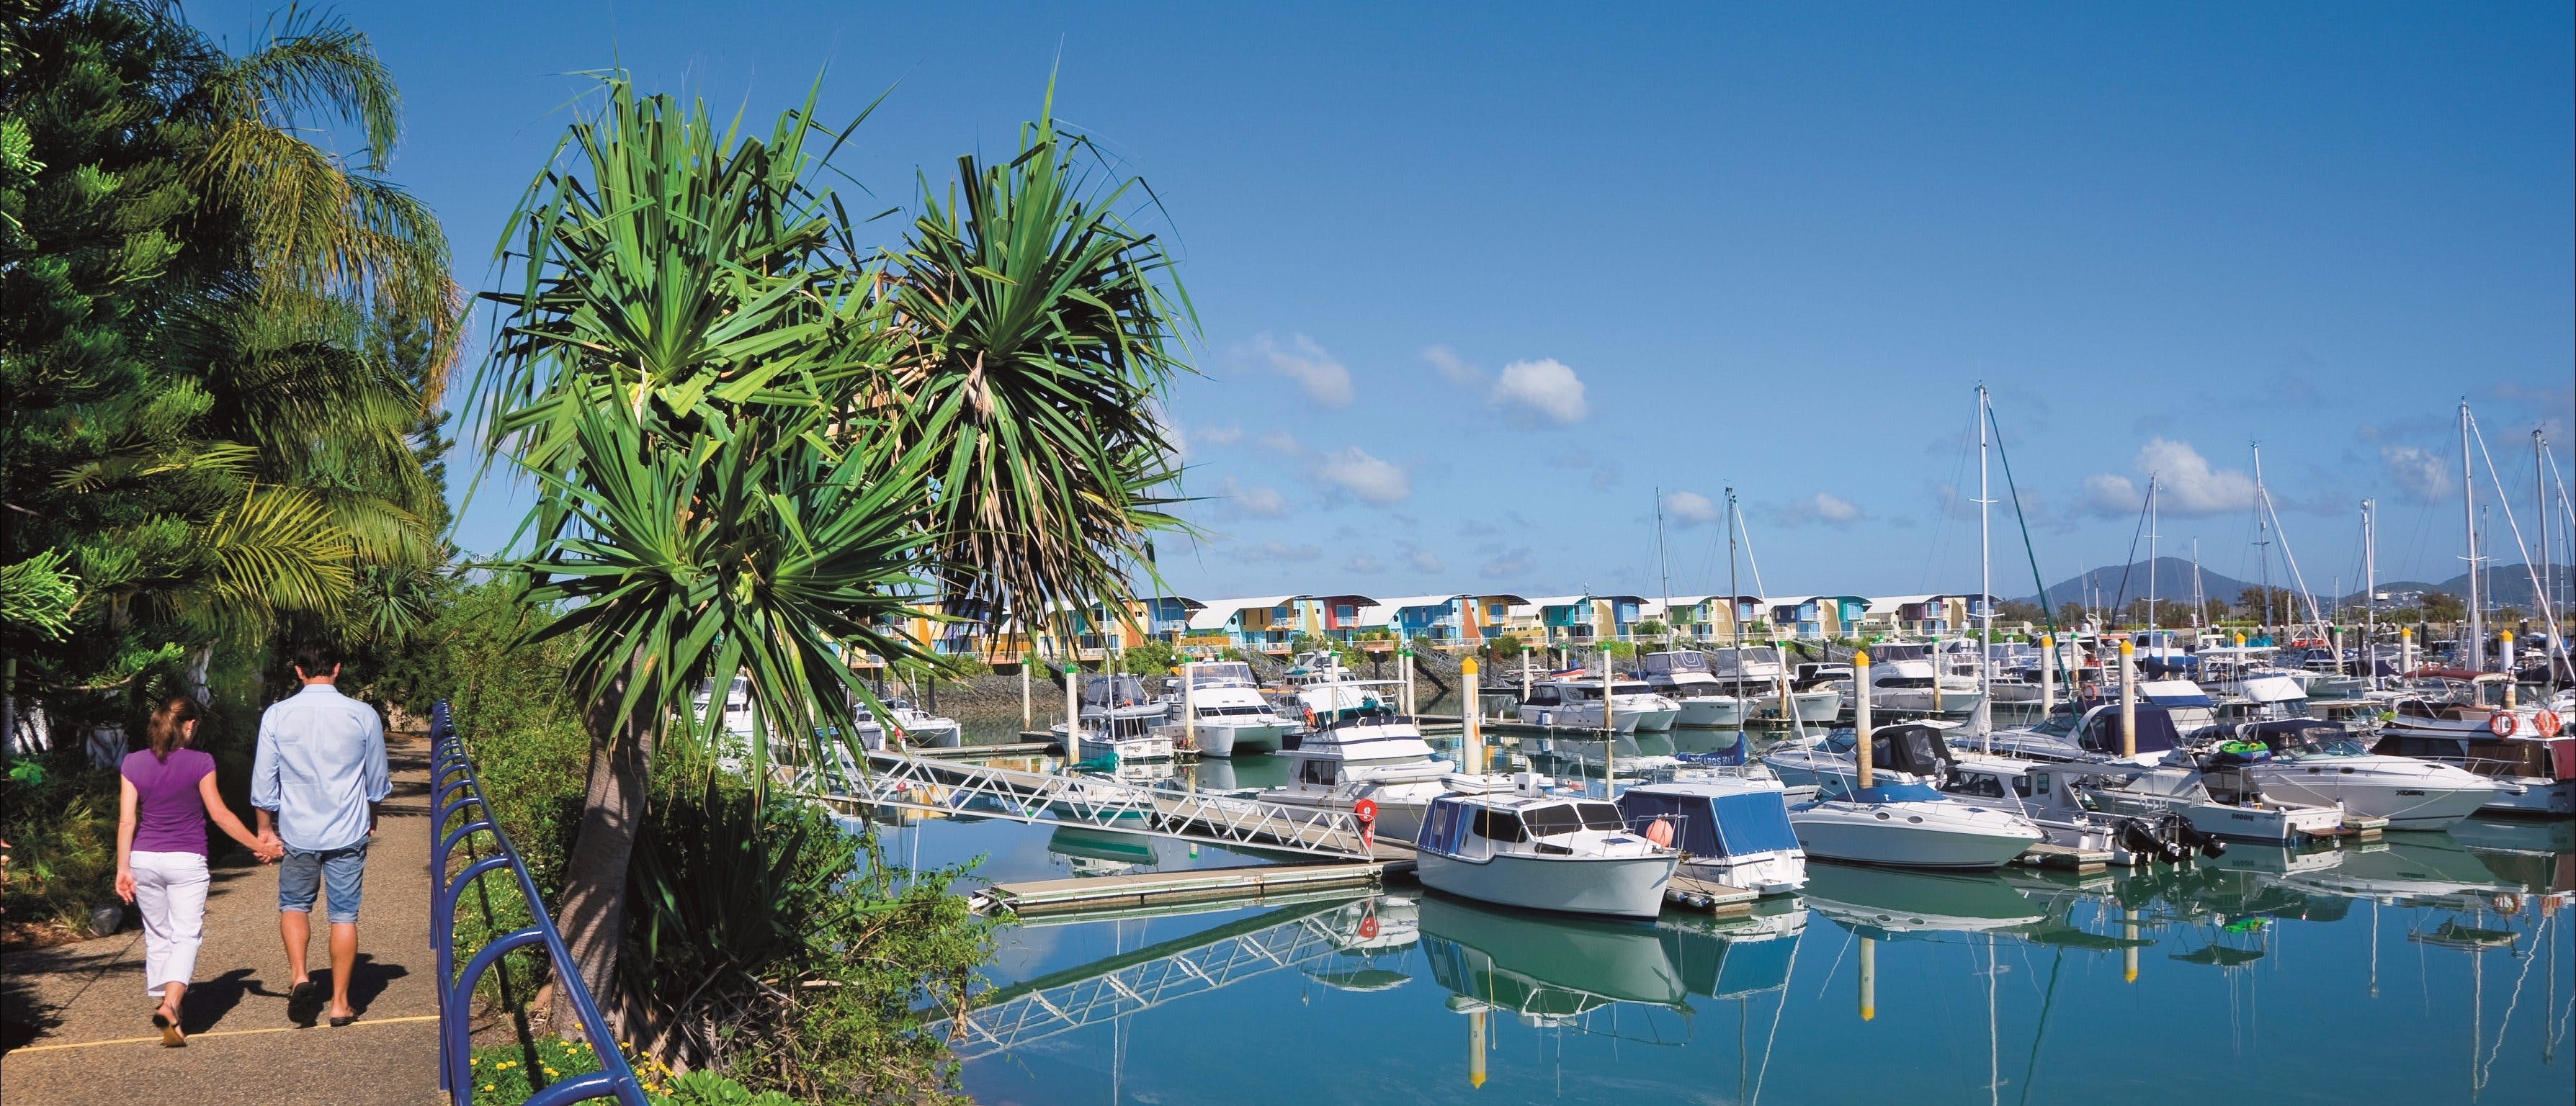 Keppel Bay Fishing Adventure - Accommodation Nelson Bay